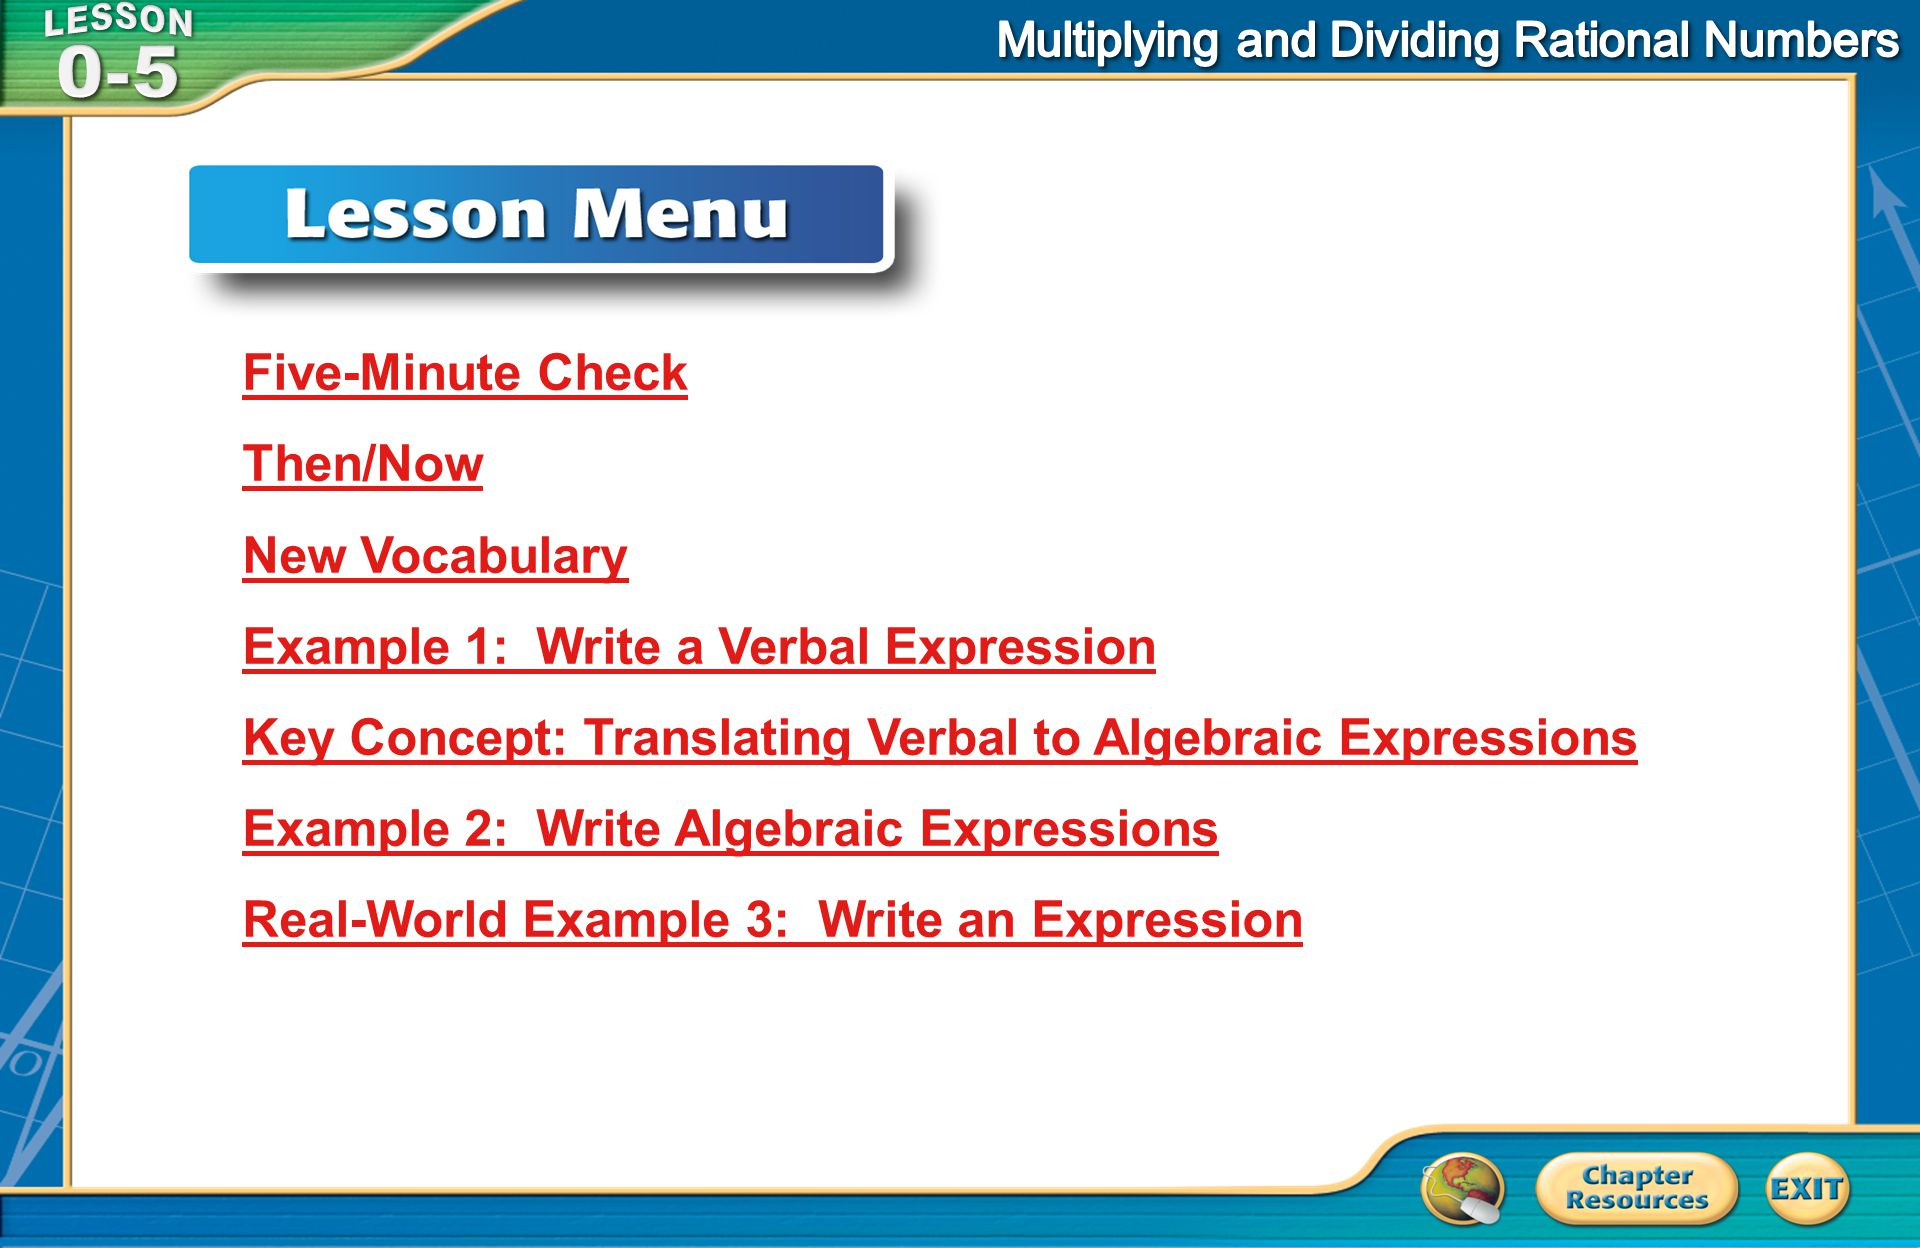 Lesson Menu Five-Minute Check Then/Now New Vocabulary Example 1:Write a Verbal Expression Key Concept: Translating Verbal to Algebraic Expressions Exa